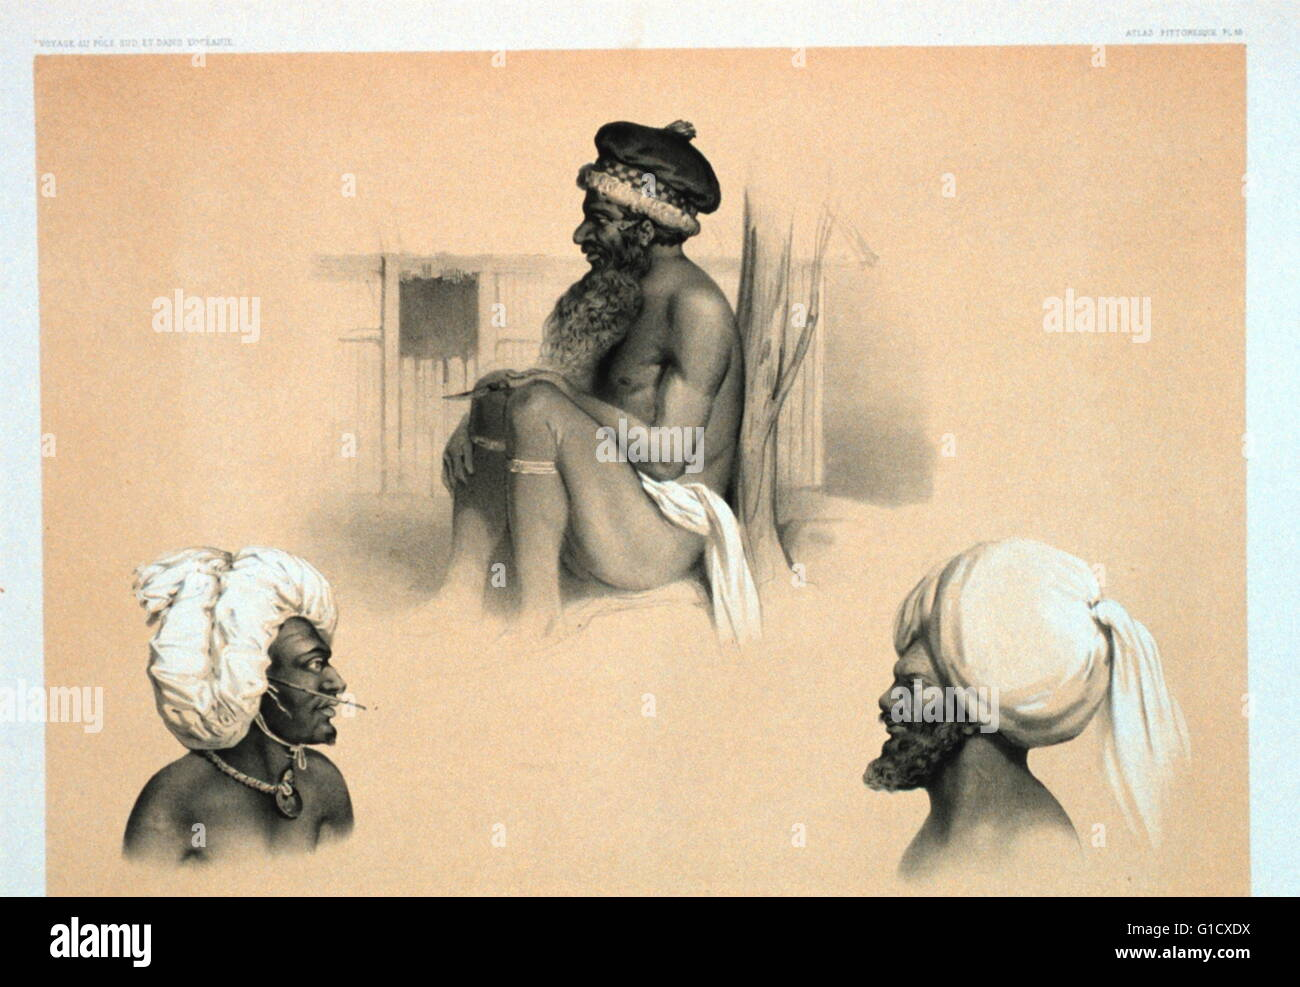 Plate 85. Tanoa, Abouni-Valou, Roi de Pao. by Émile Lassalle (1813-1871) a French painter and lithographer. - Stock Image